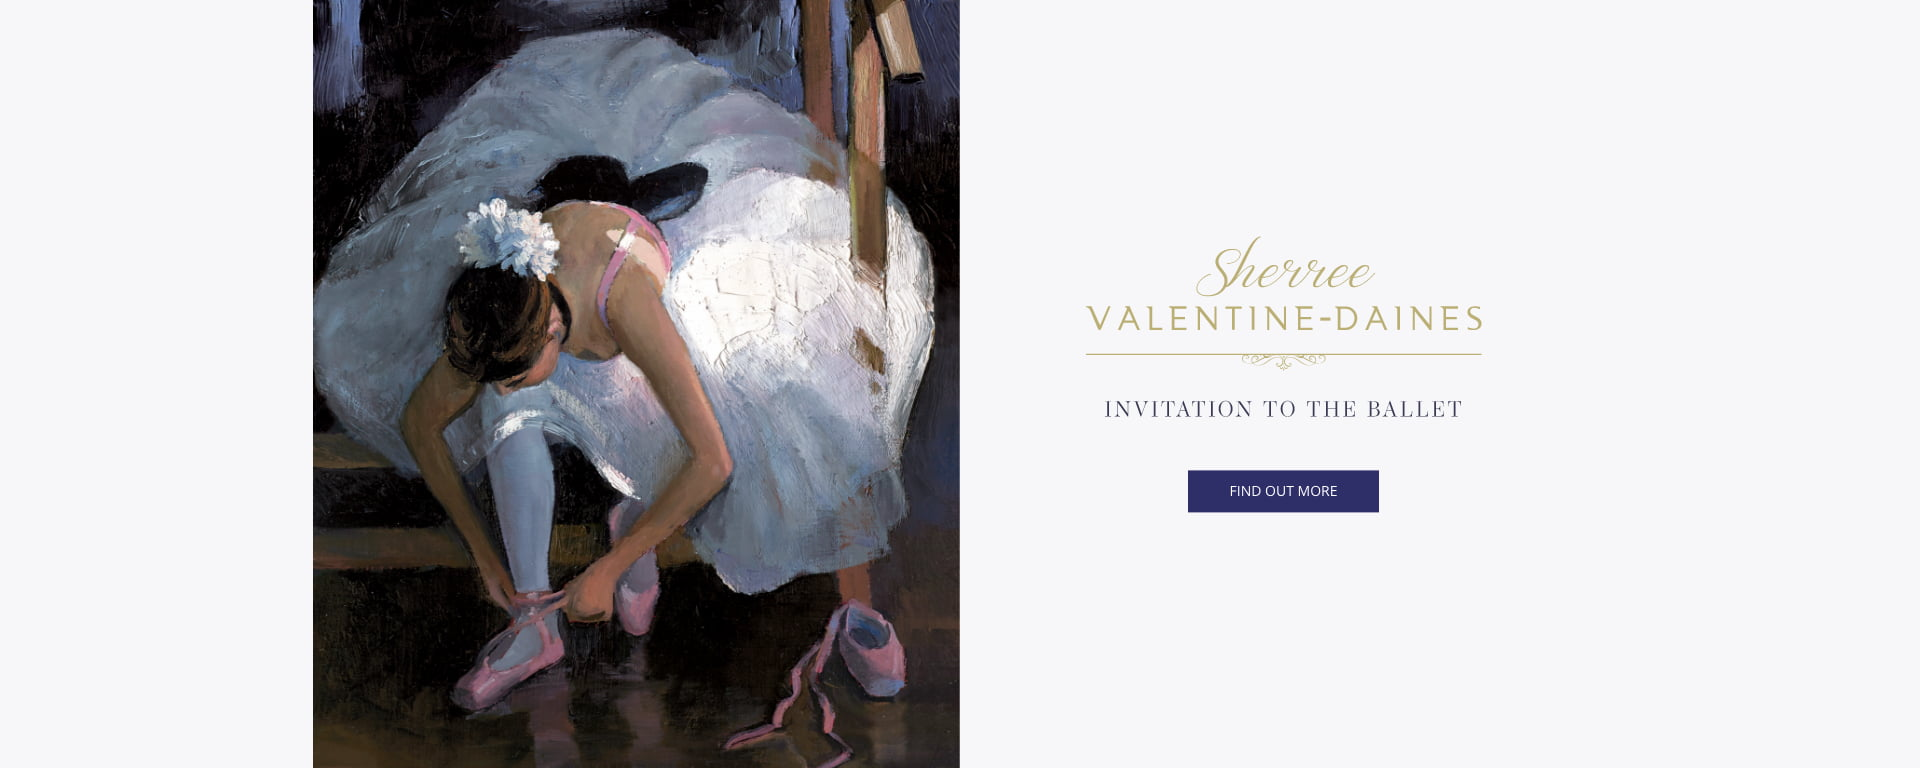 An Invitation to the Ballet – The Latest Collection from Sherree Valentine-Daines